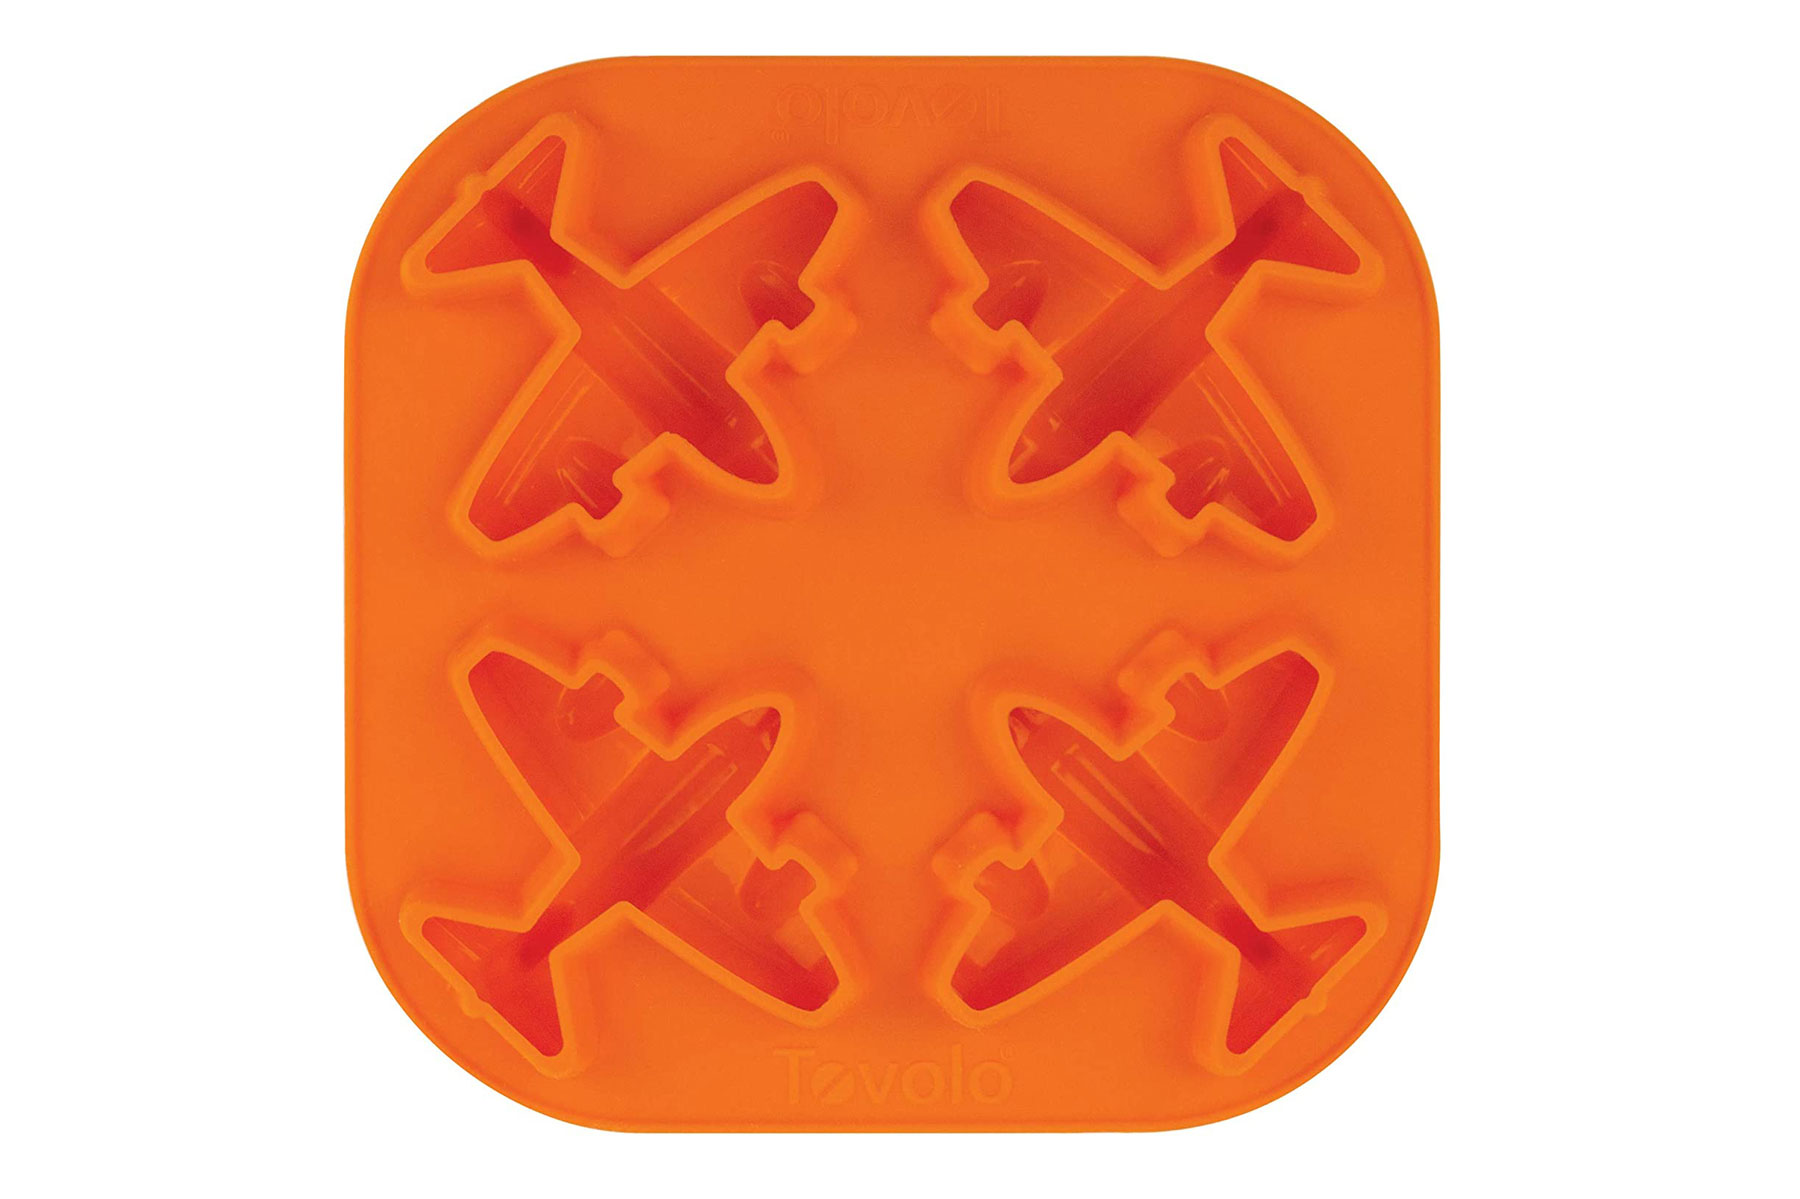 Tovolo Novelty Airplane Ice Cube Mold Trays